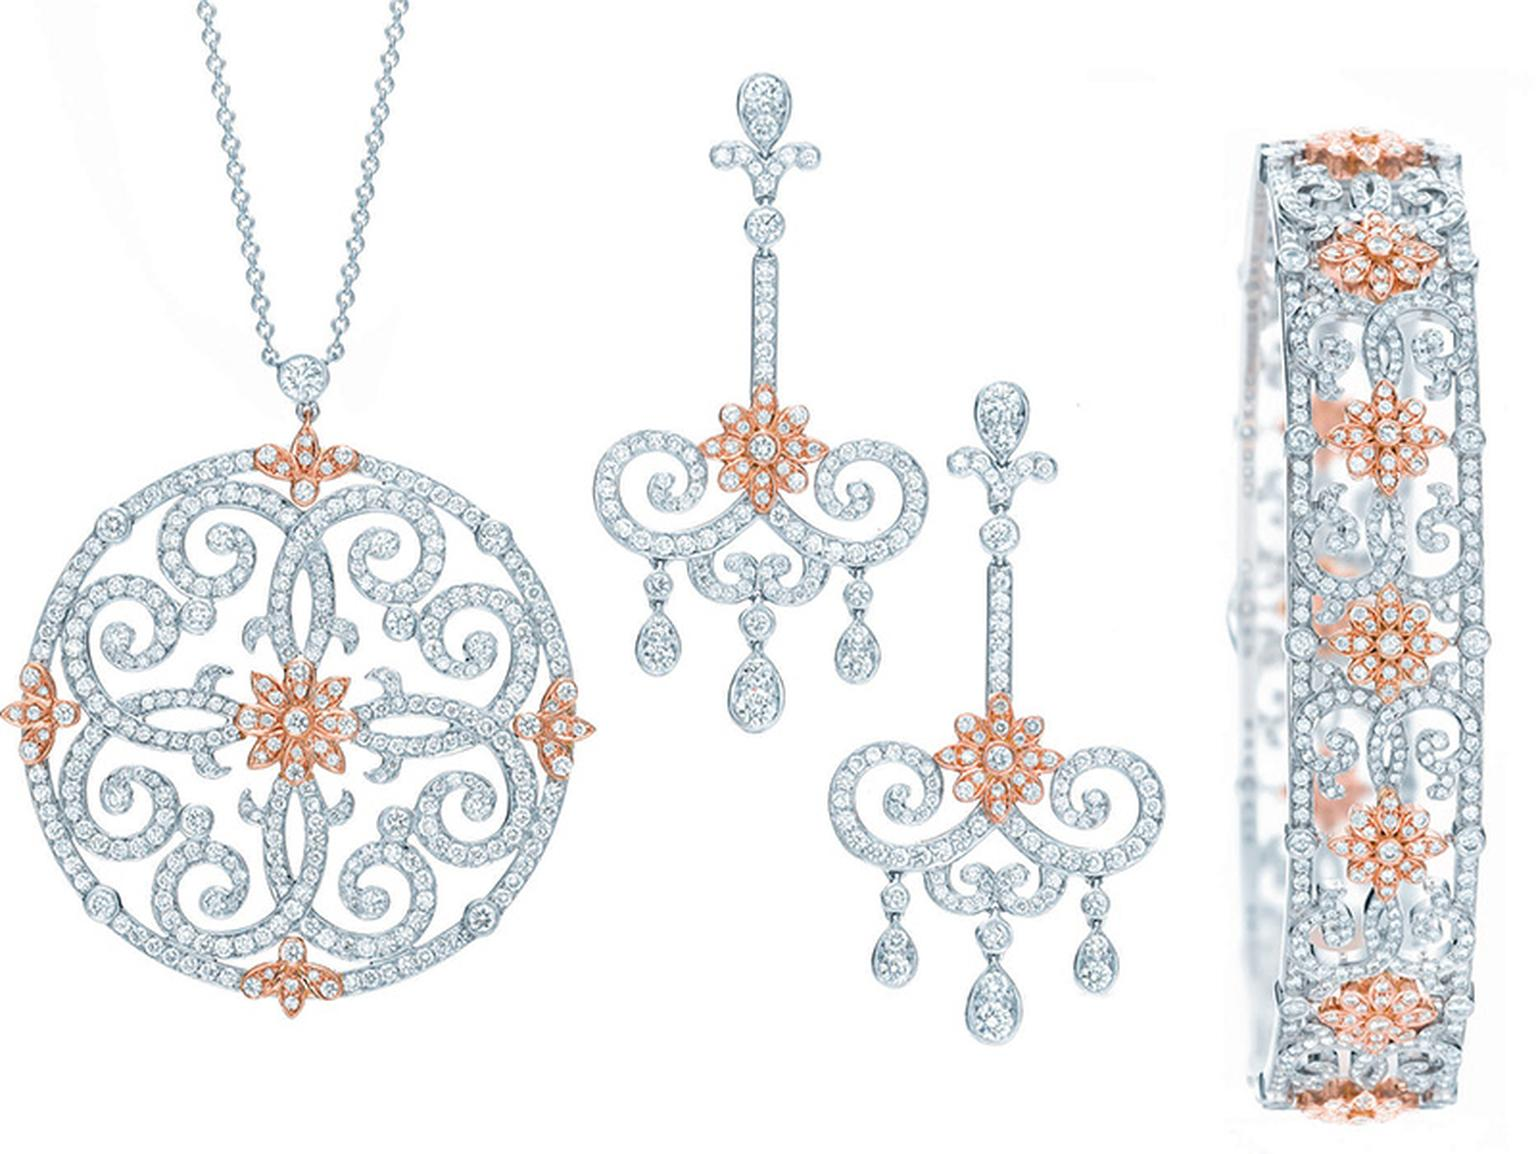 Tiffany-Enchant-collection-in-platinum-and-18-karat-rose-gold.jpg